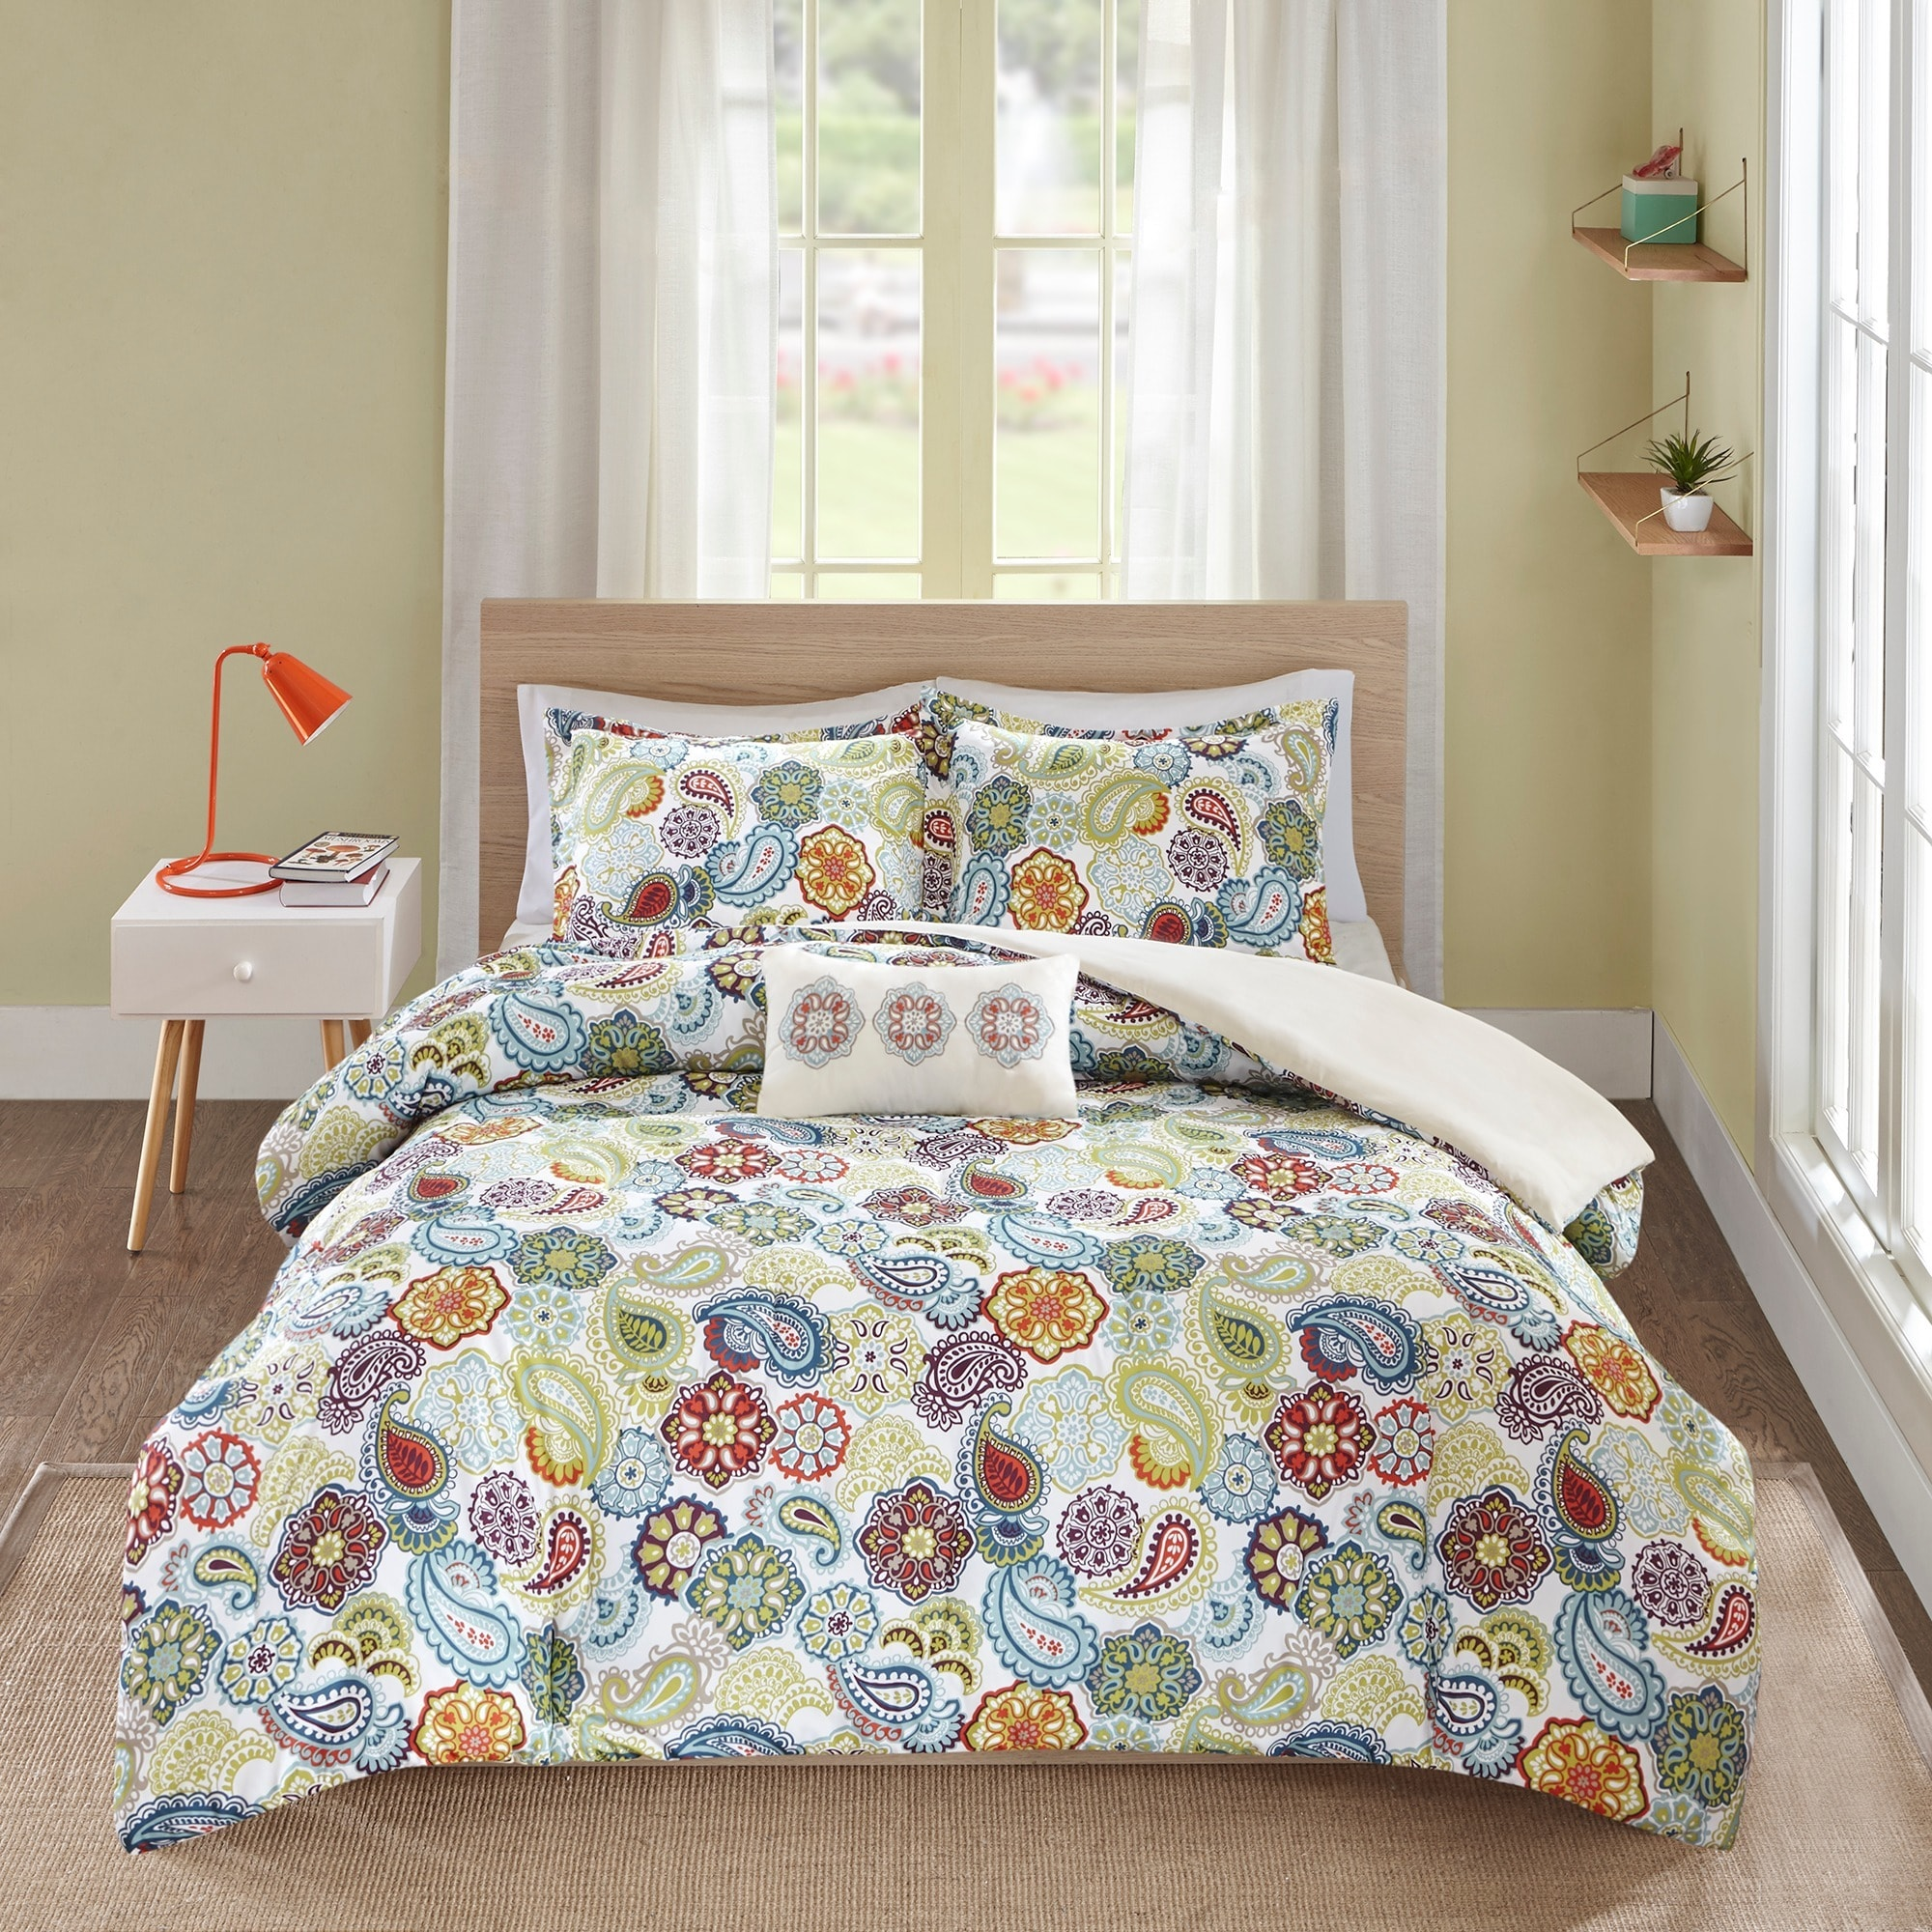 d moroccan duvet set show details spice action williams product cover j paisley shop